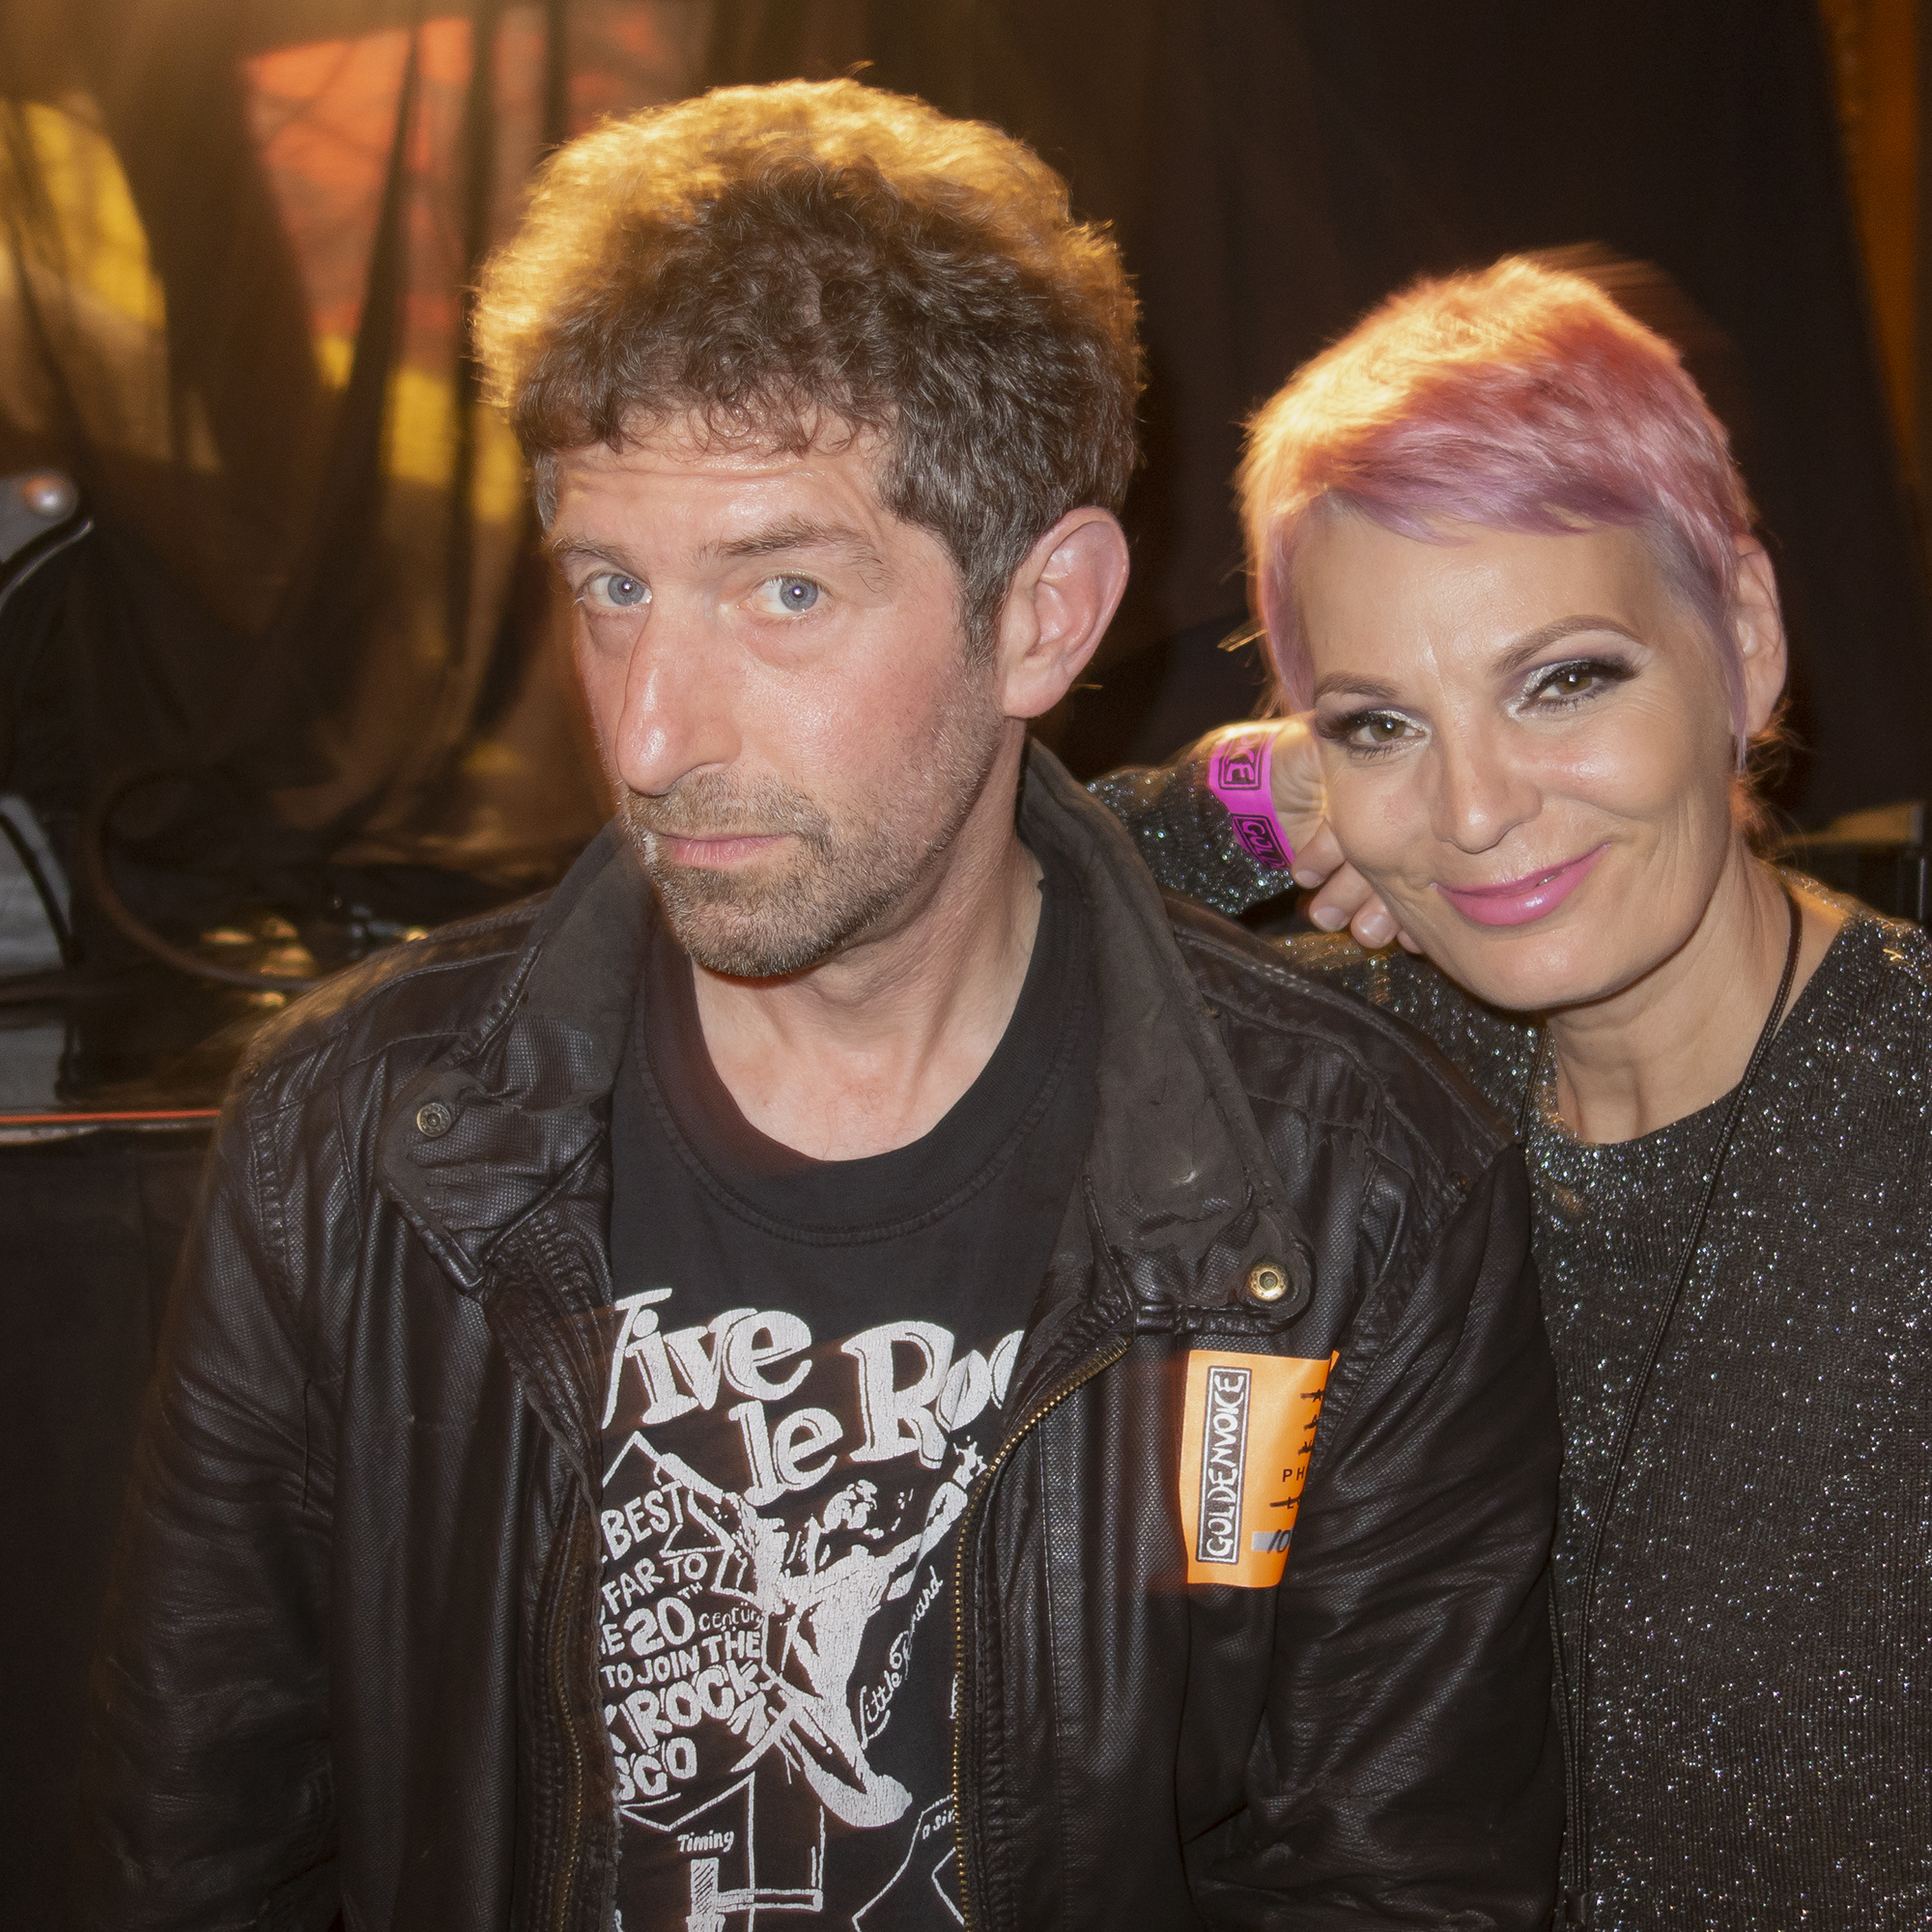 Greg Gutbezahl (IG @gregmg451) with ace photographer Lisa (IG @scarydeadtimestories) at the Regency Ballroom for The Damned and the Darts Halloween show.